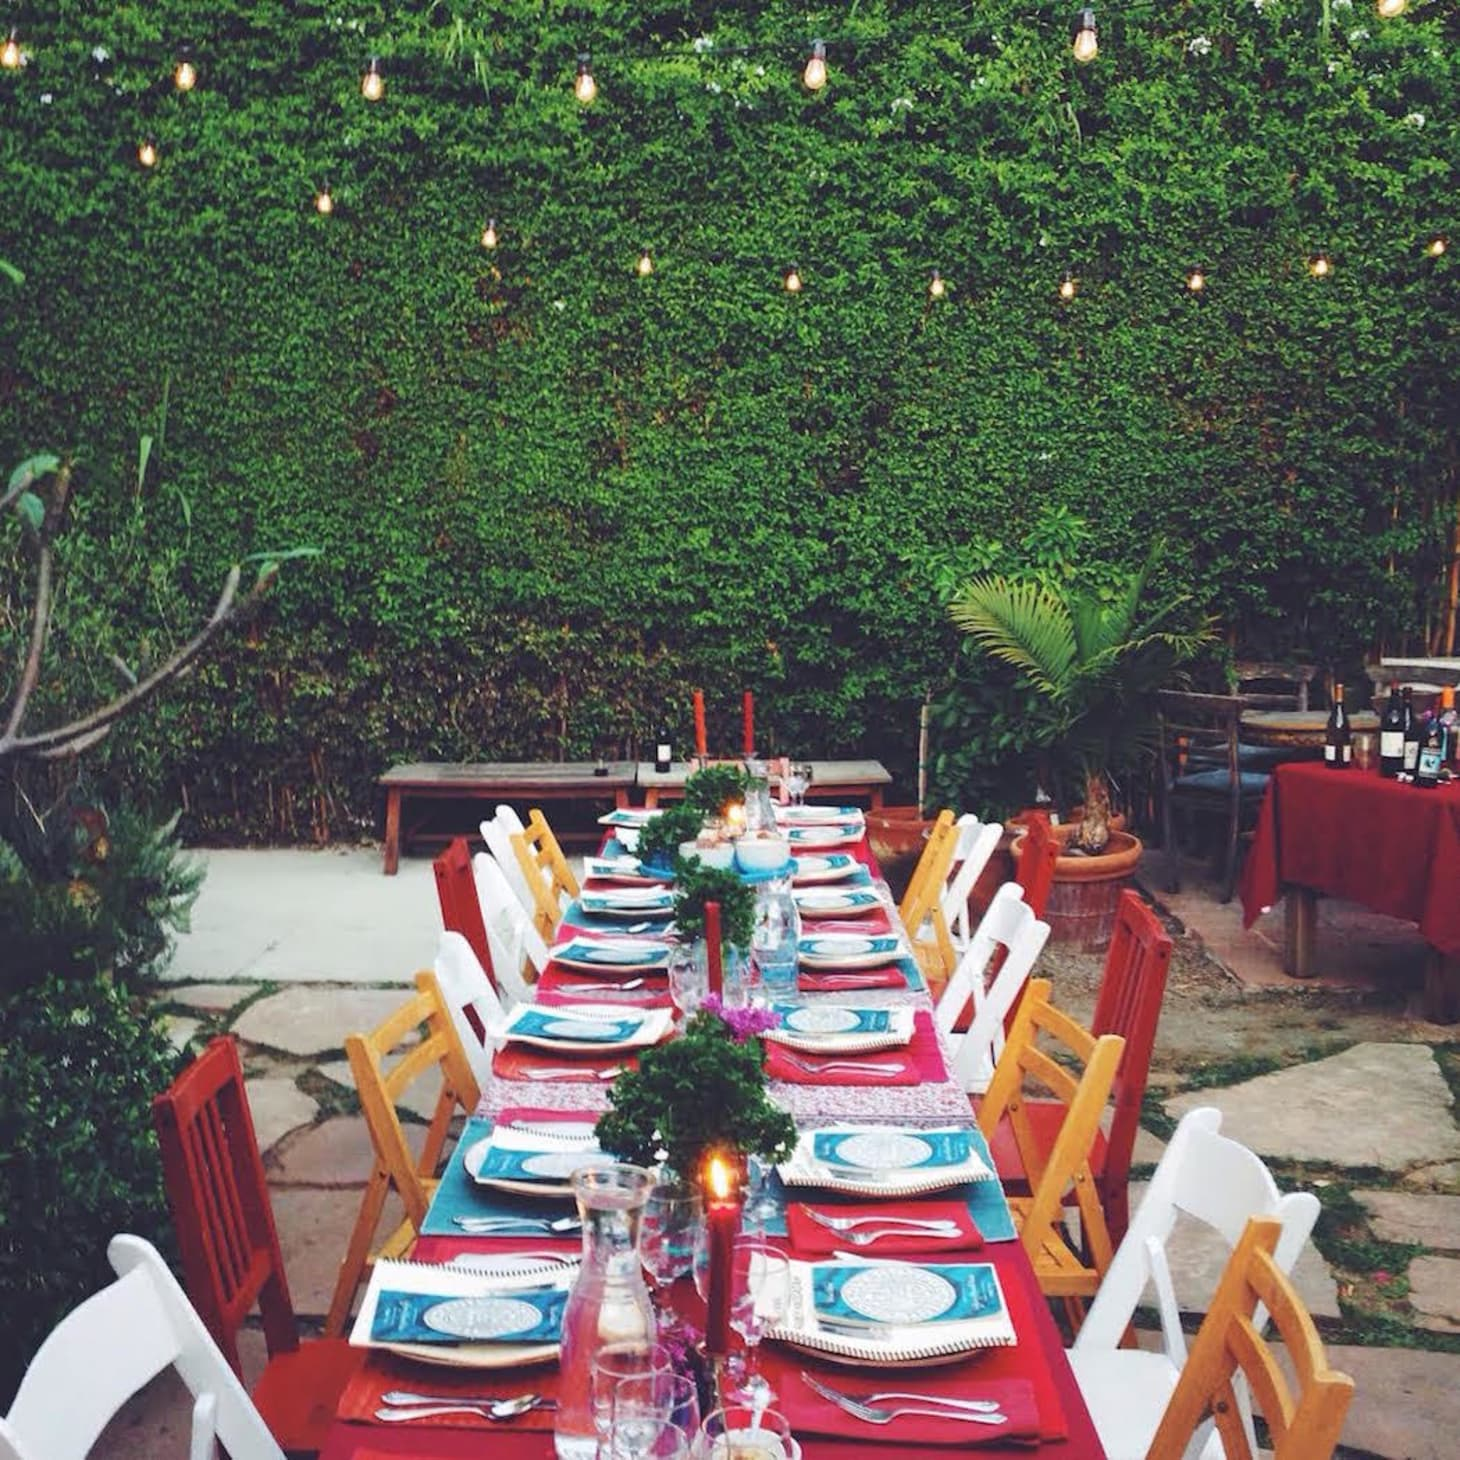 Passover Table Decoration Ideas to Upgrade Your Seder